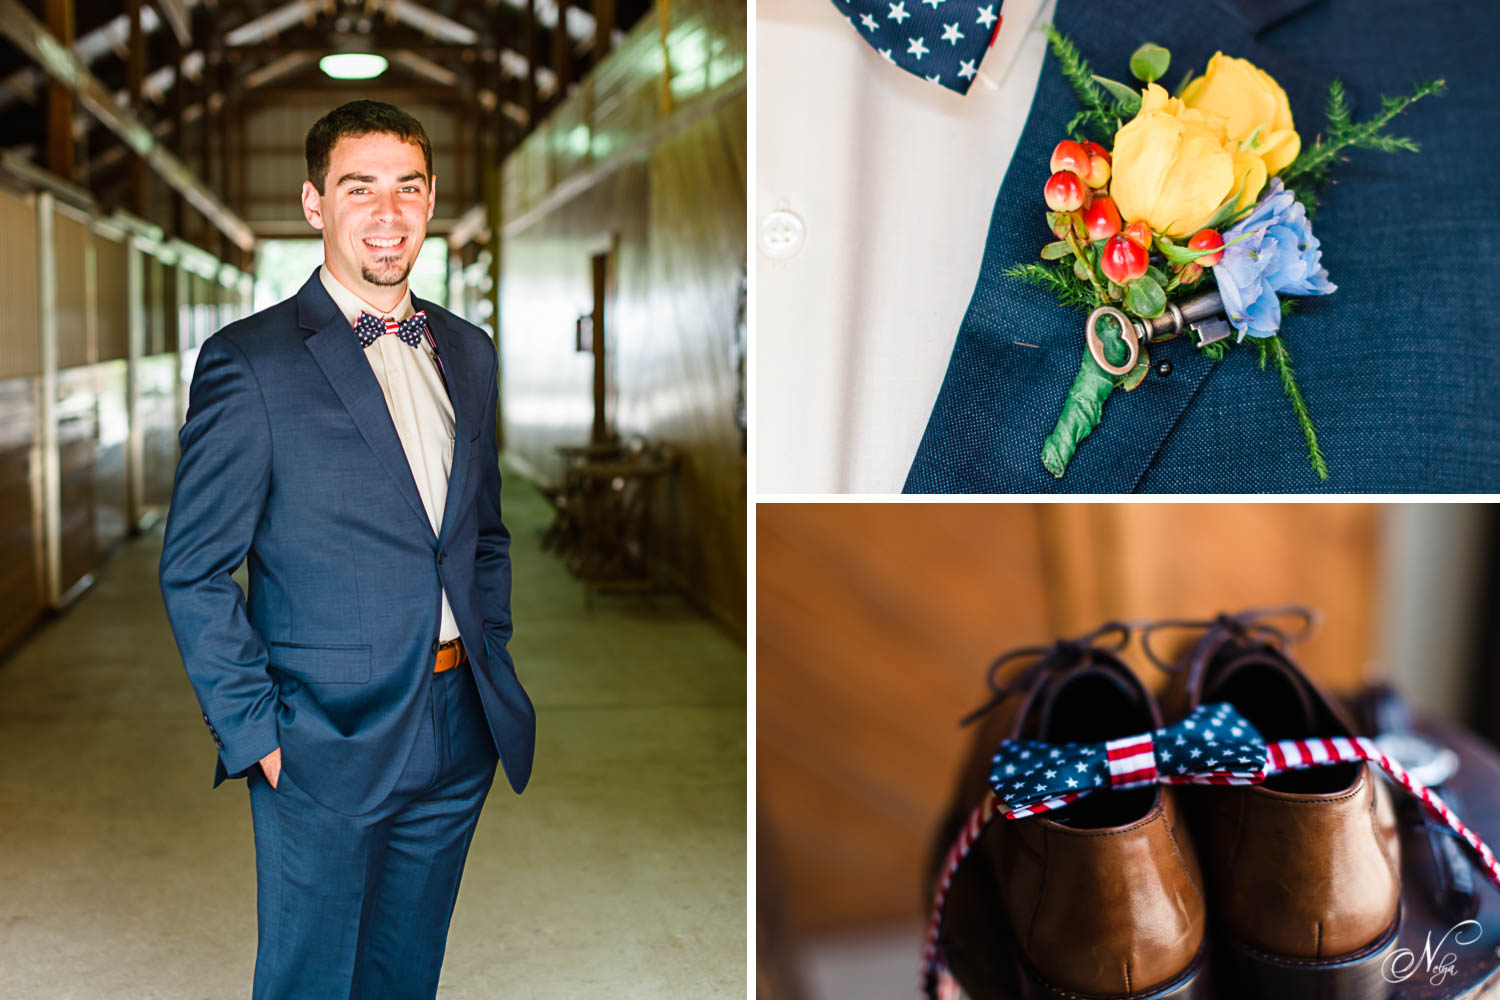 groom attire navy and patriotic bowtie